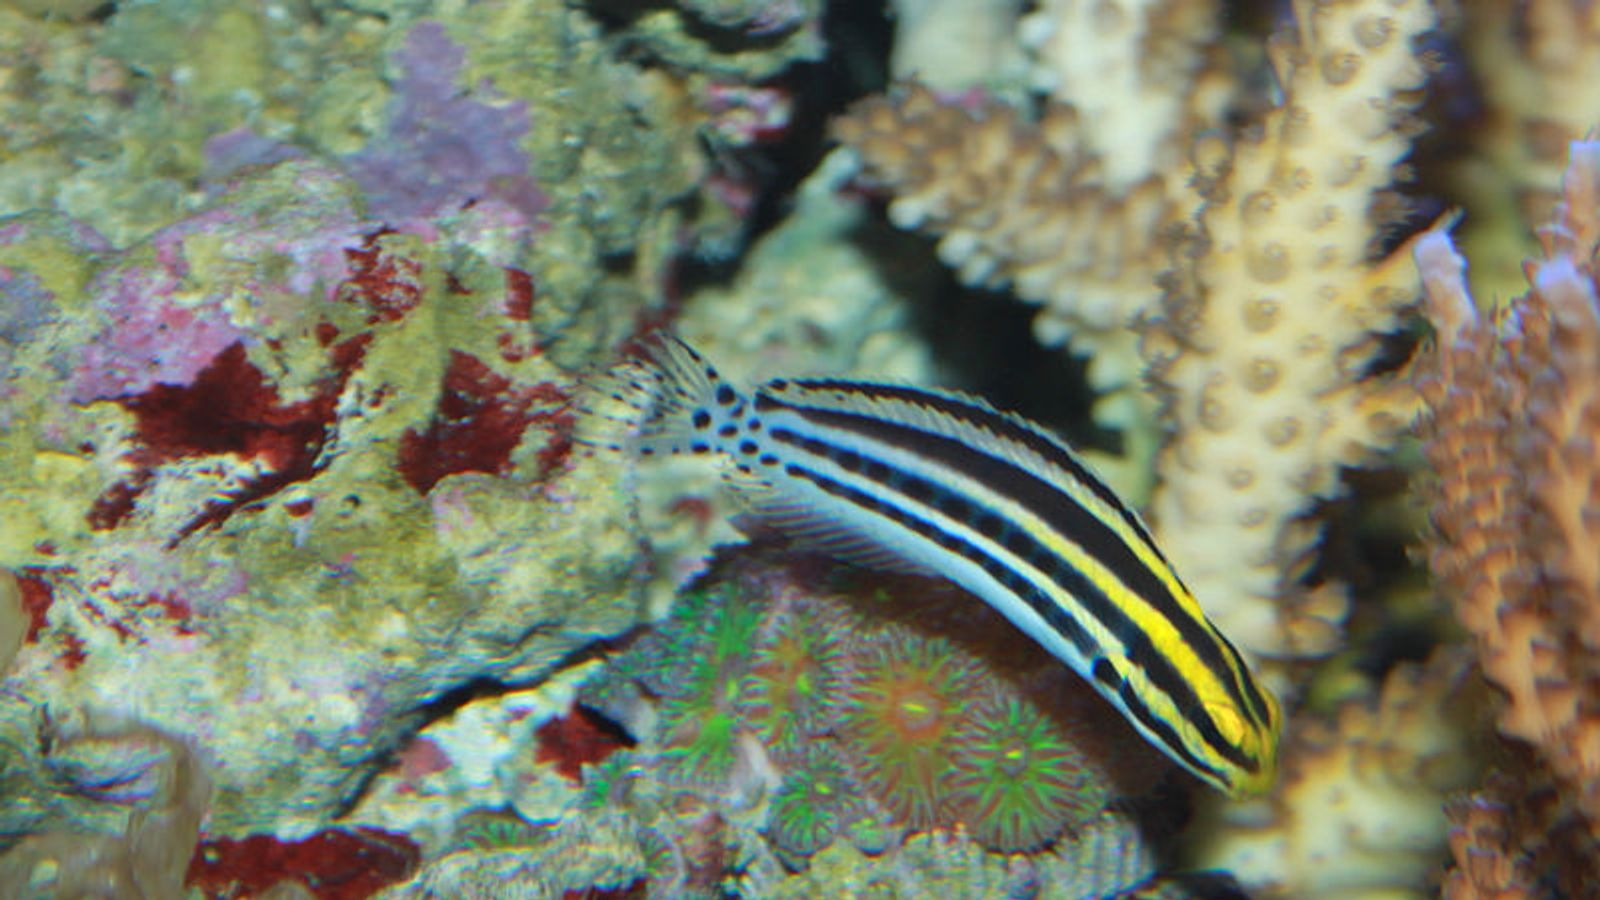 venomous fang blenny fish could hold key to painkillers